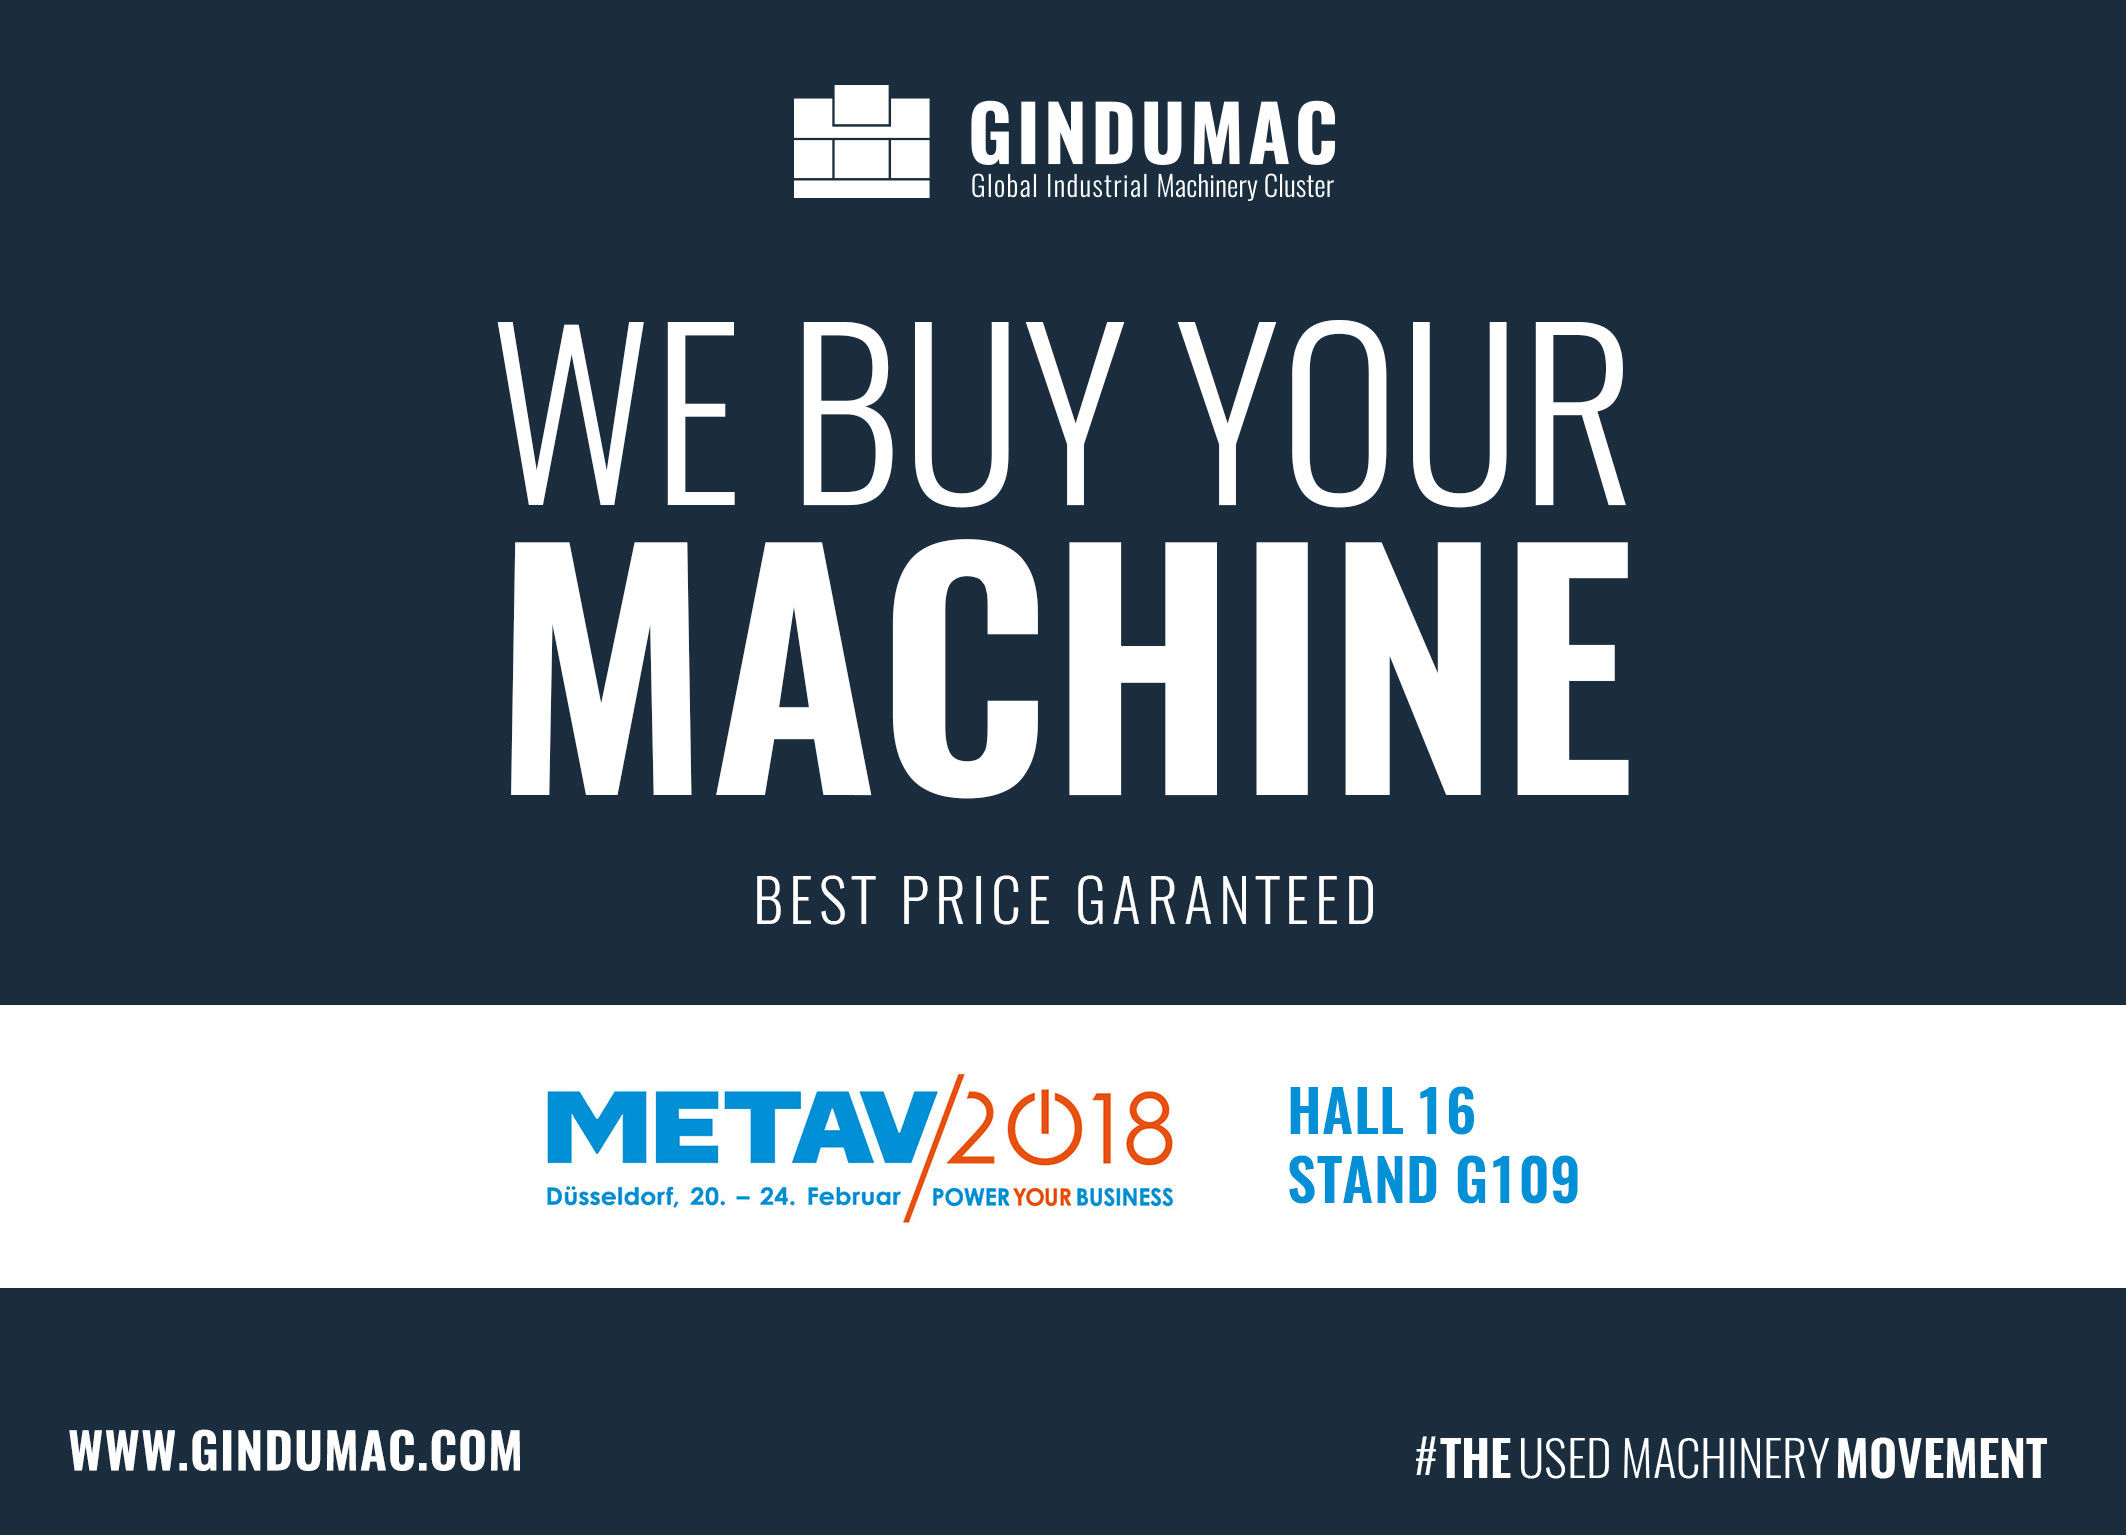 METAV 2018 - GINDUMAC GmbH - We buy Used Machine Tools